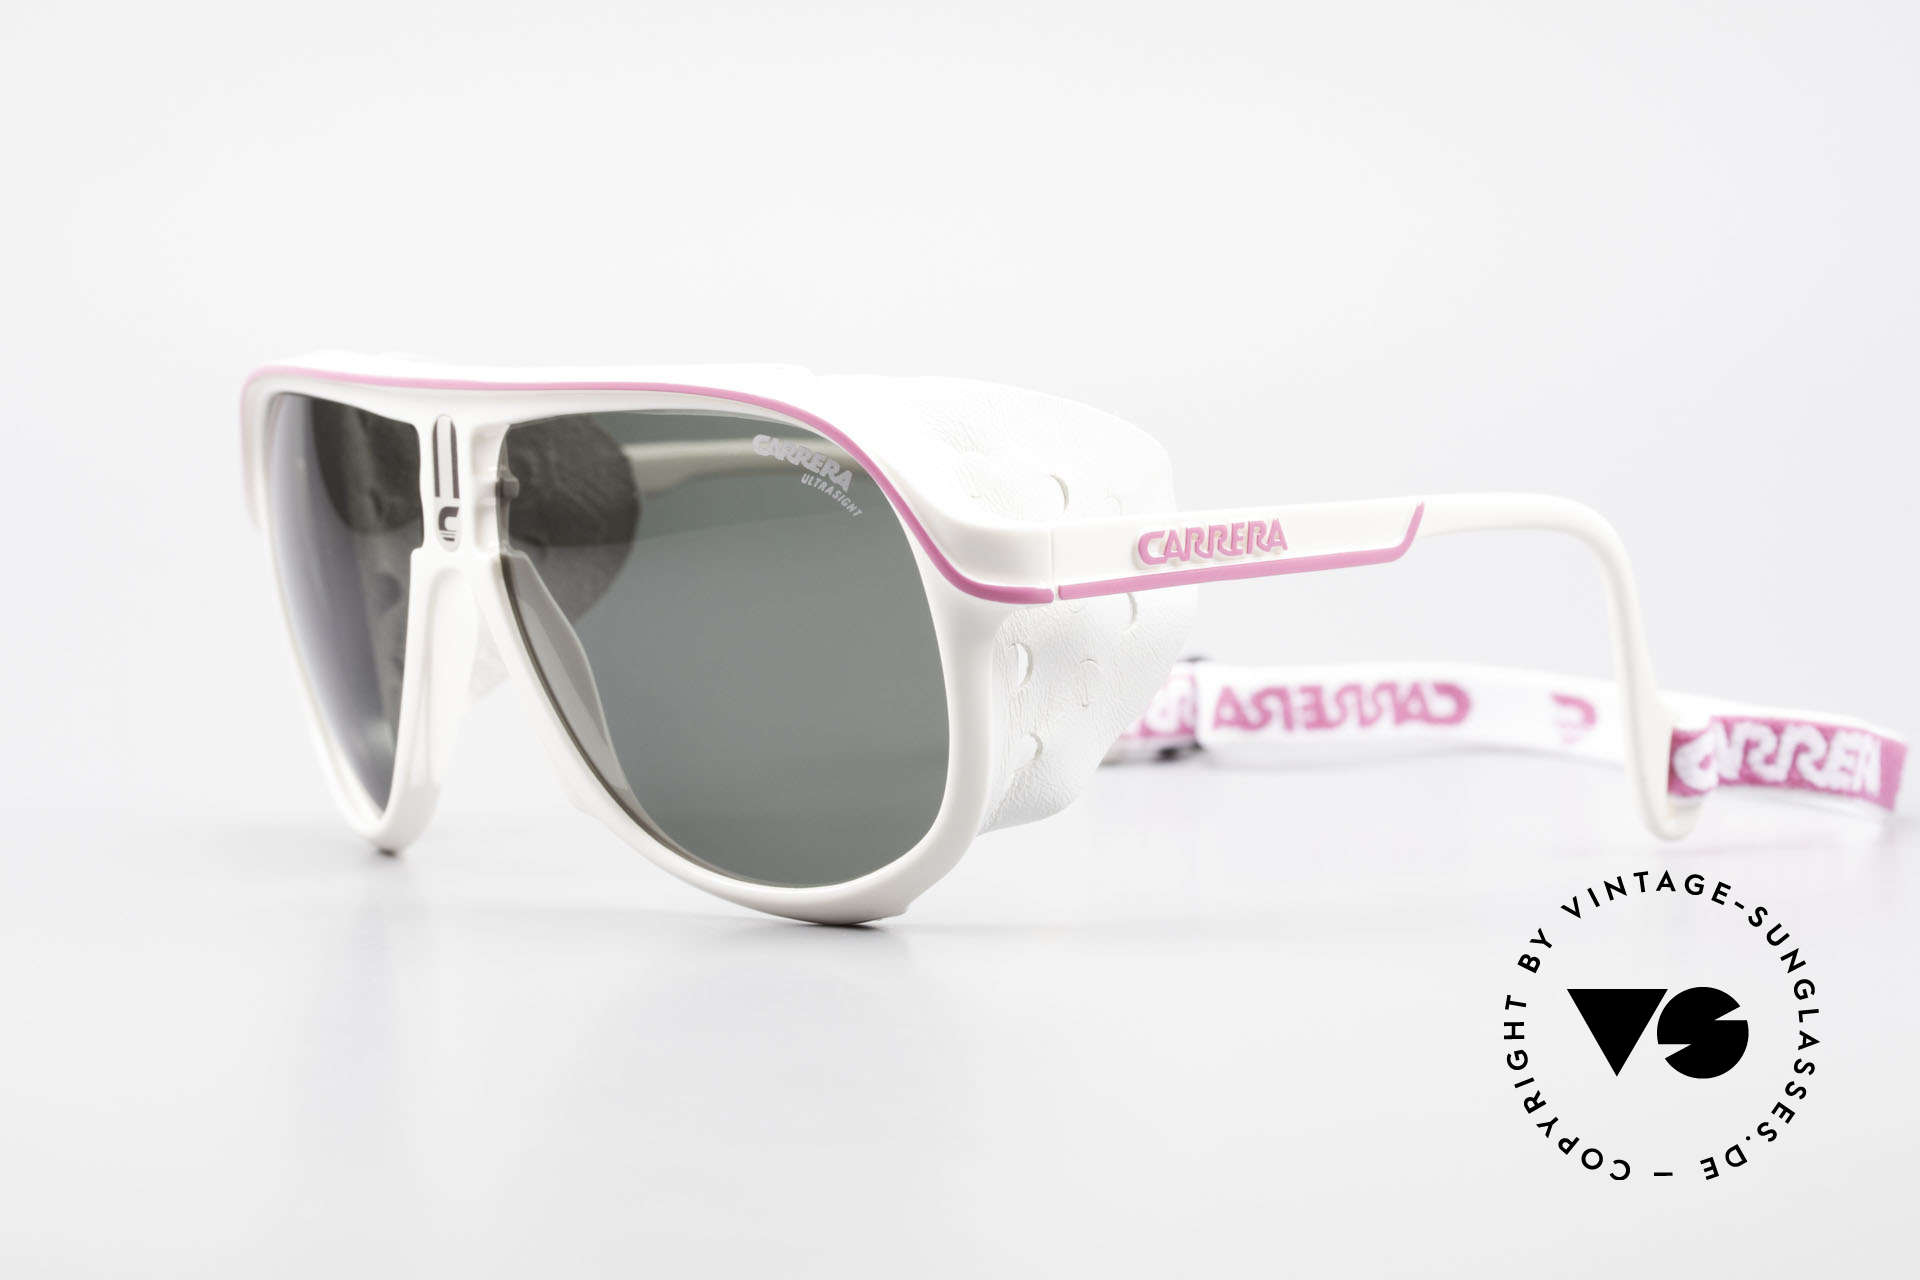 Carrera 5544 Sports Glacier Sunglasses 90's, Carrera Ultrasight lenses for extreme weather-conditions, Made for Men and Women